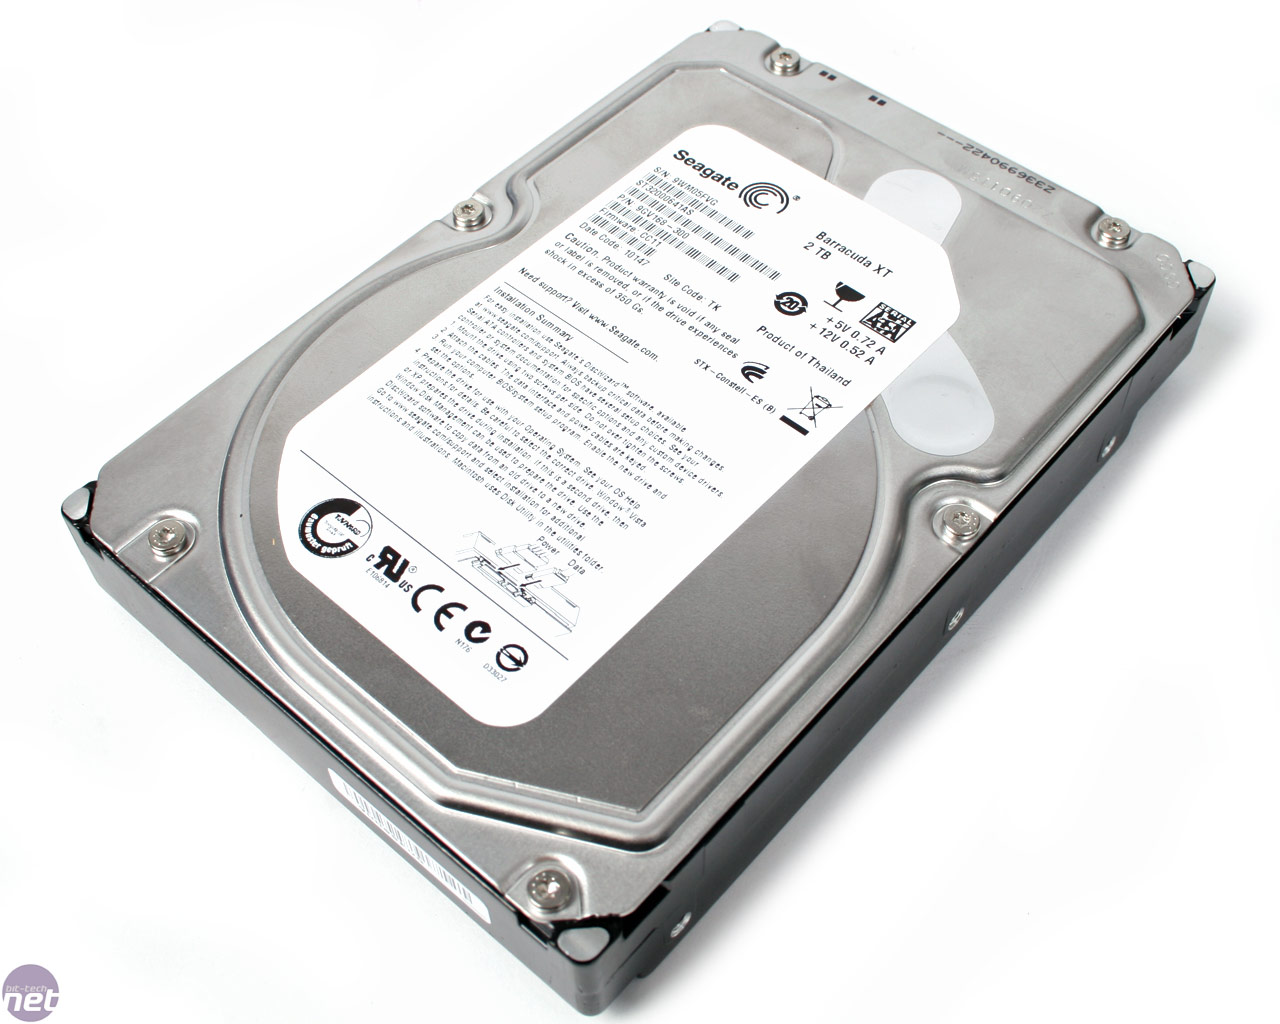 Ổ cứng Seagate 1TB, Renew  BH Cty